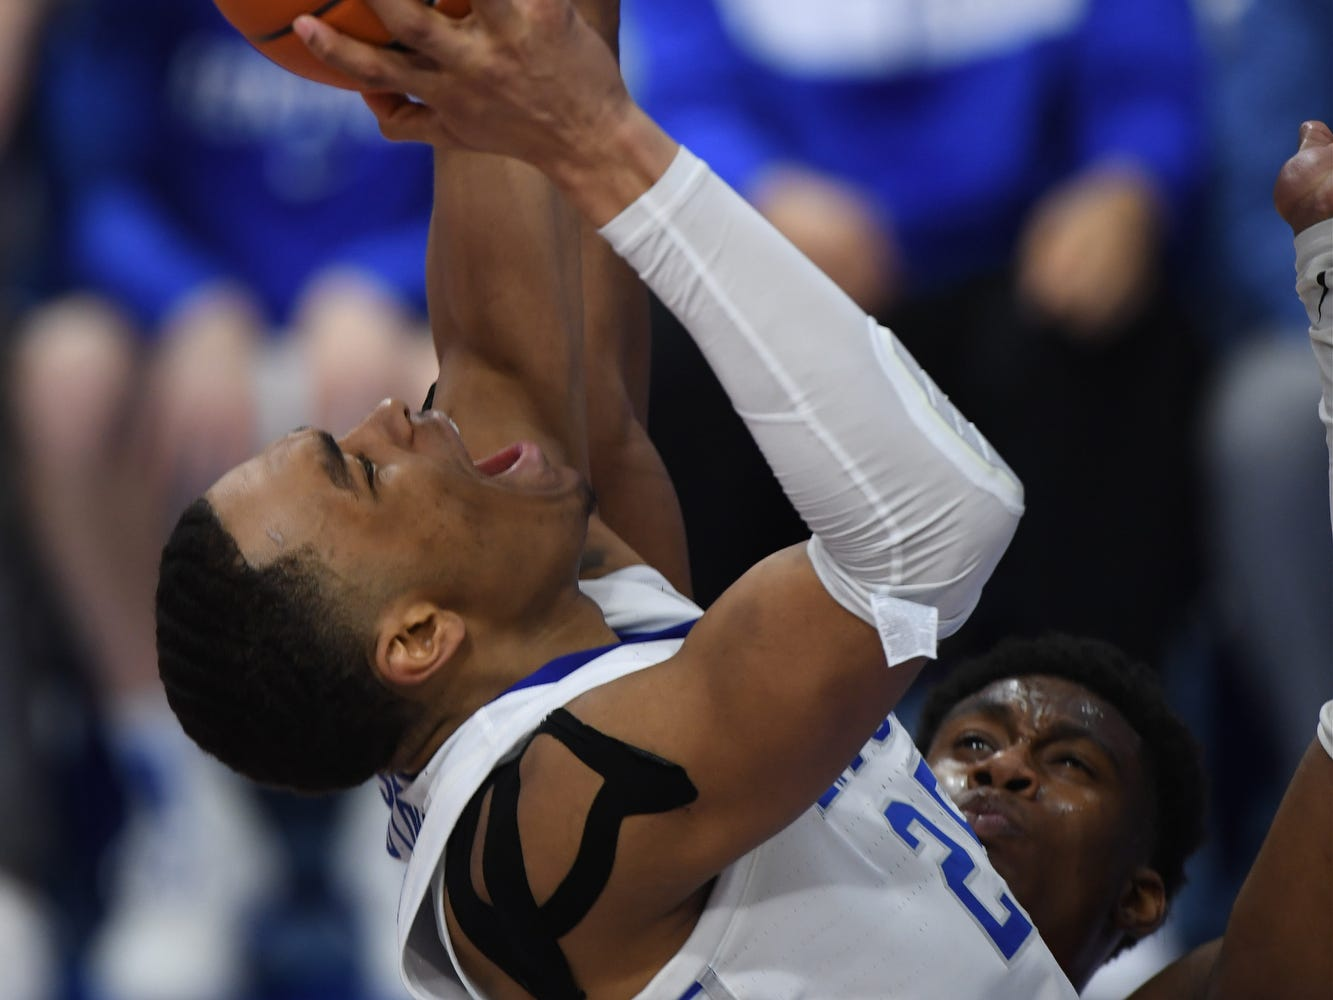 UK F PJ Washington goes up strong with the ball during the University of Kentucky mens basketball game against Tennessee at Rupp Arena in Lexington, Kentucky on Saturday, February 16, 2019.